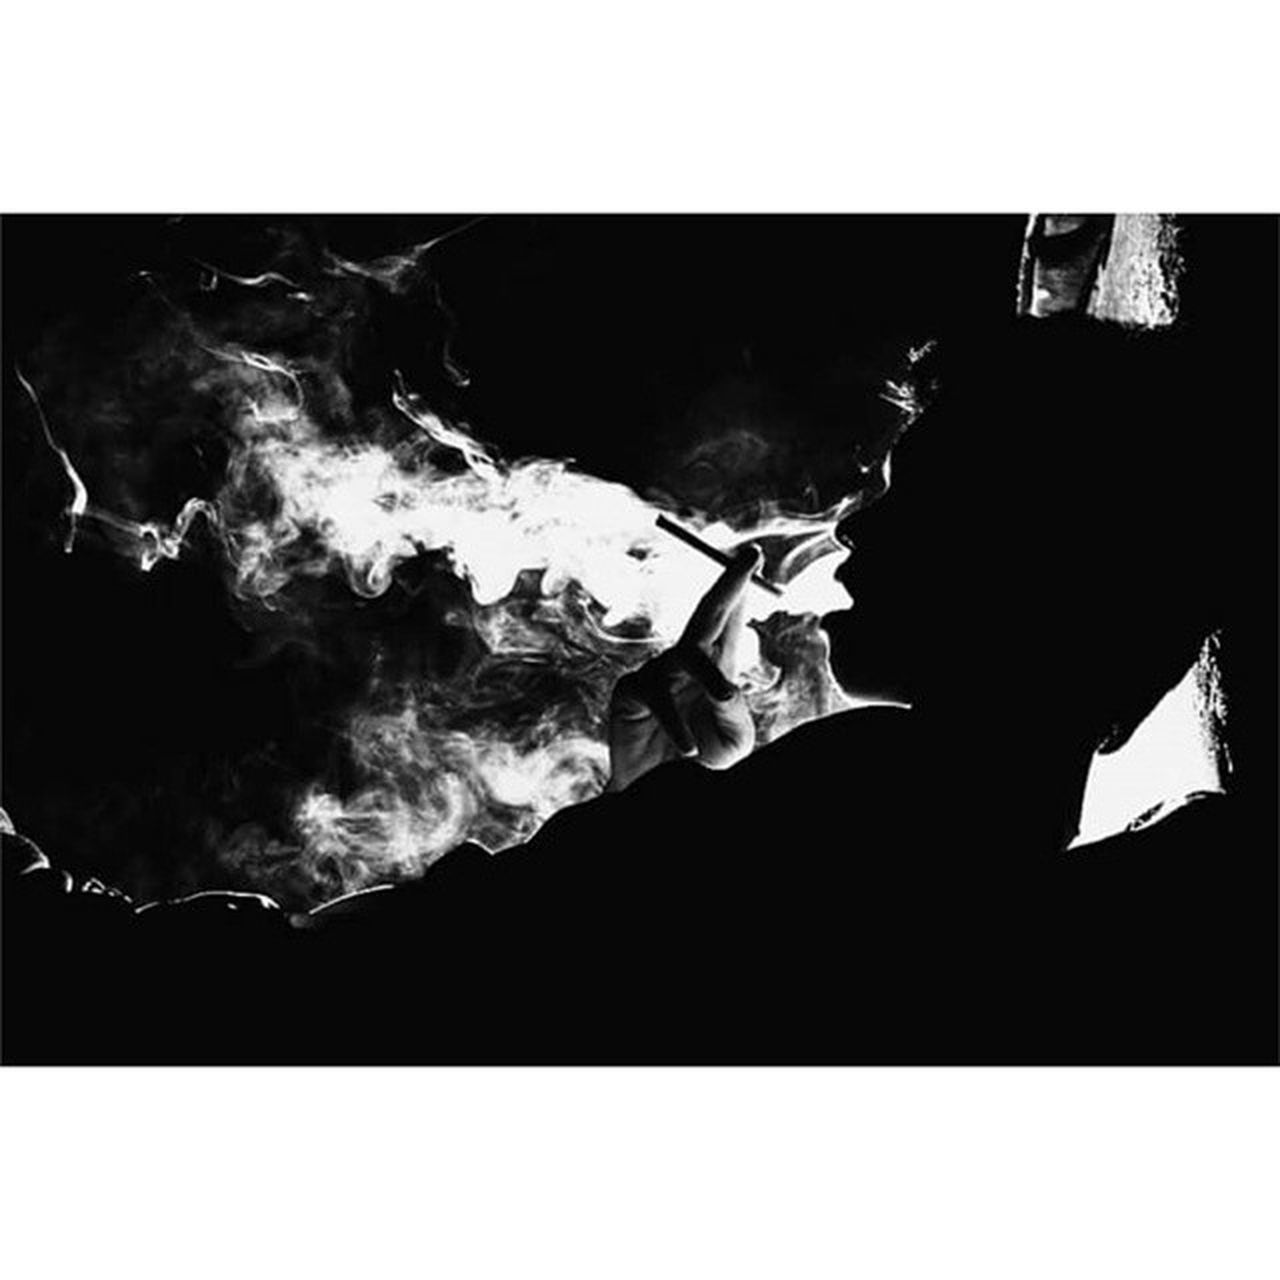 Smoke💨💨💨 Photography Indofotografer Doubletap Me Vscocam VSCO Bw